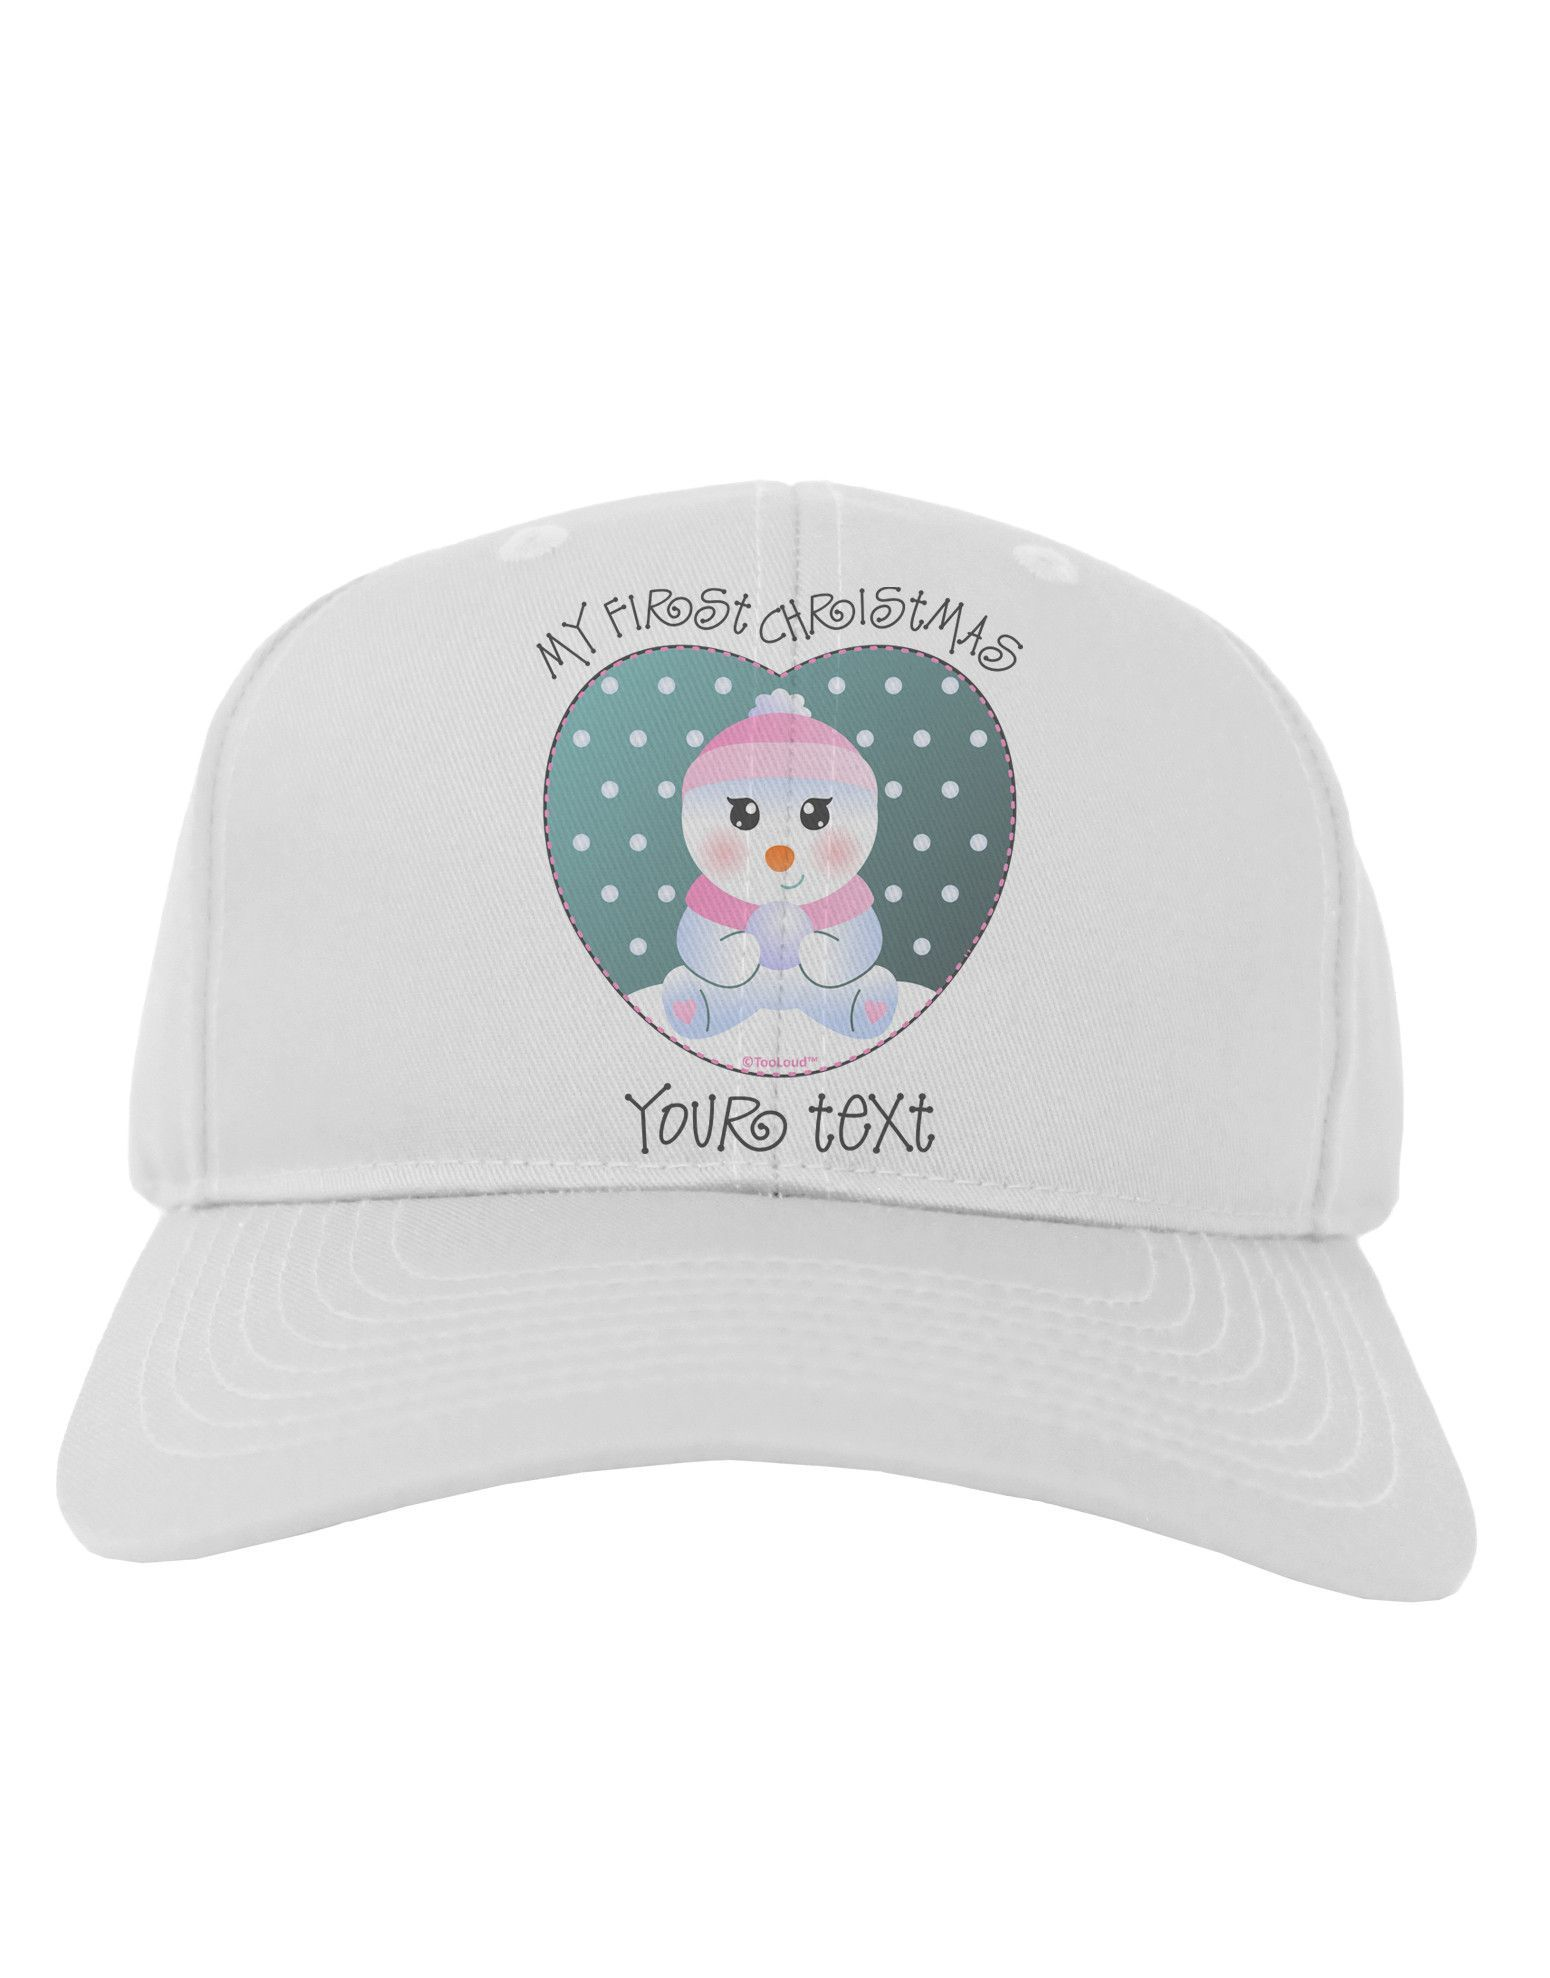 Personalized My First Christmas Snowbaby Girl Adult Baseball Cap Hat